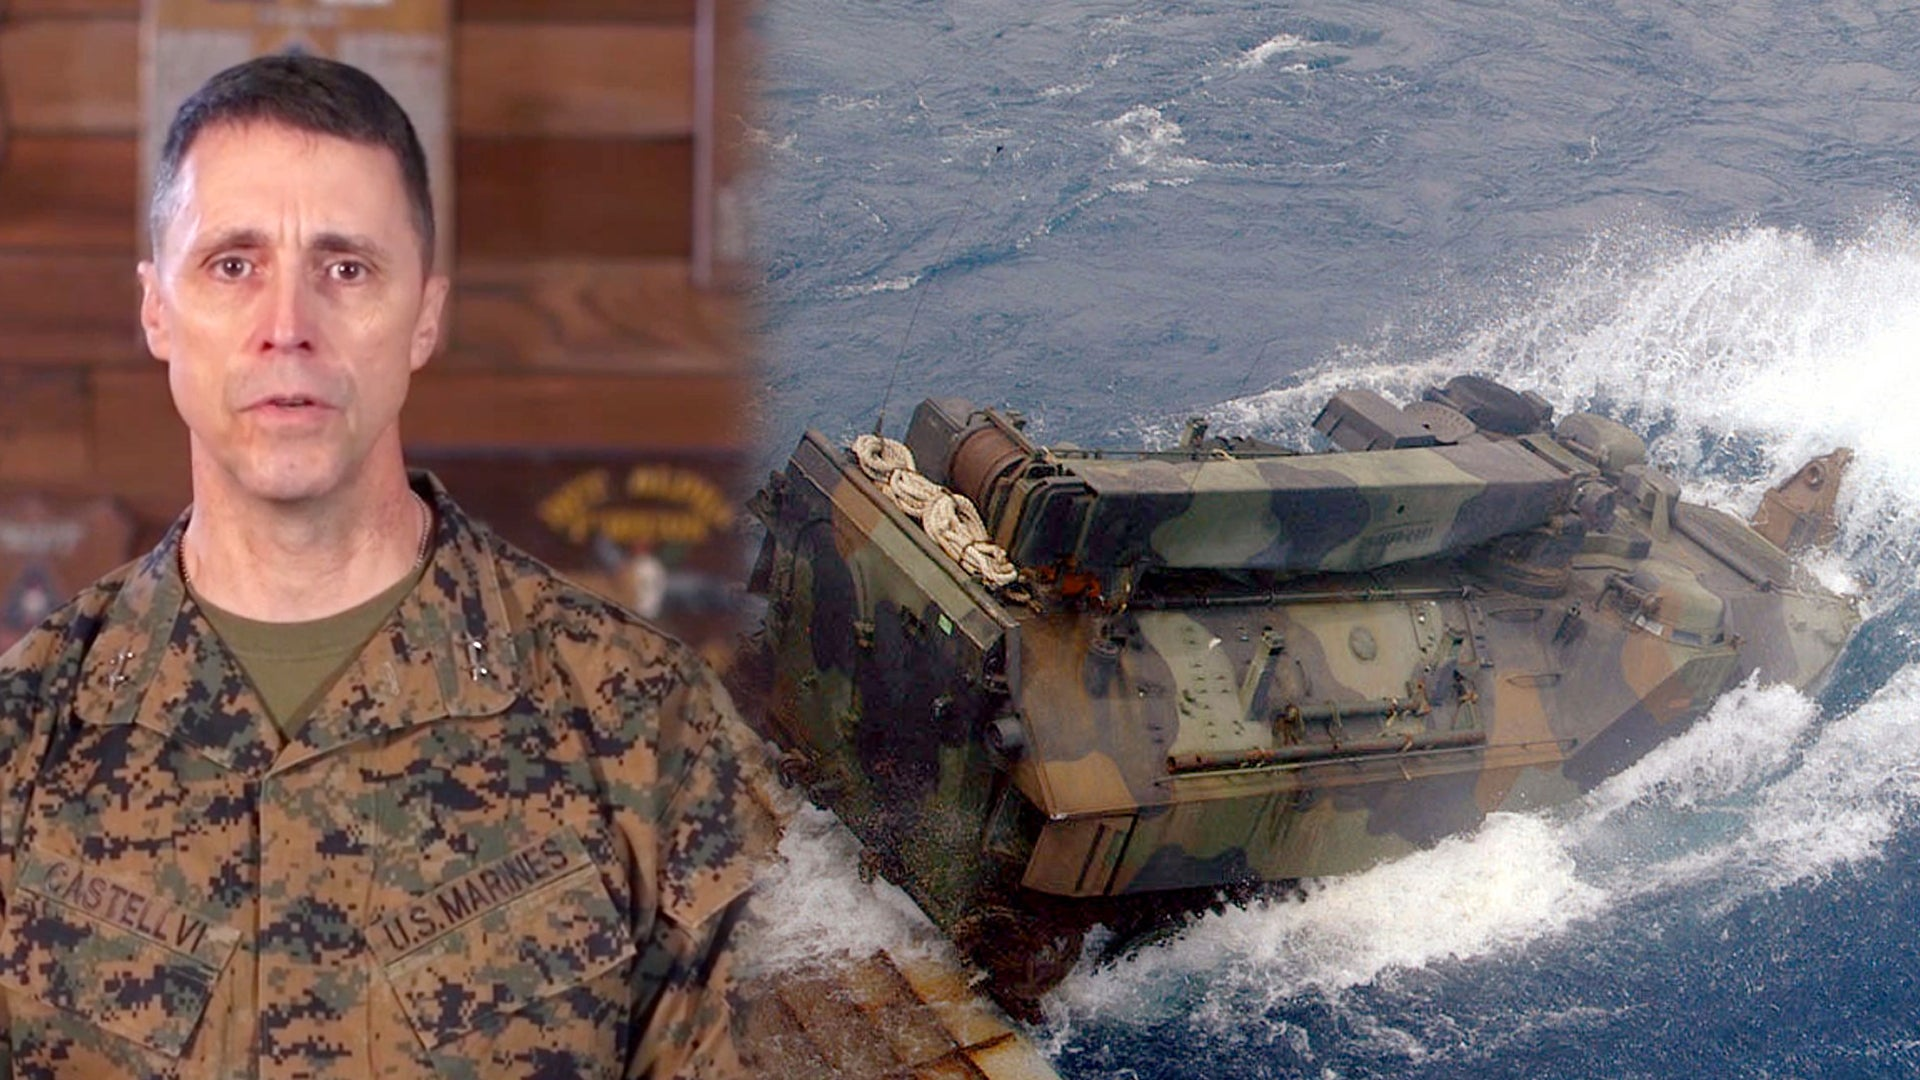 Marine Corps Inspector General fired for role in amphibious assault vehicle accident that killed 9